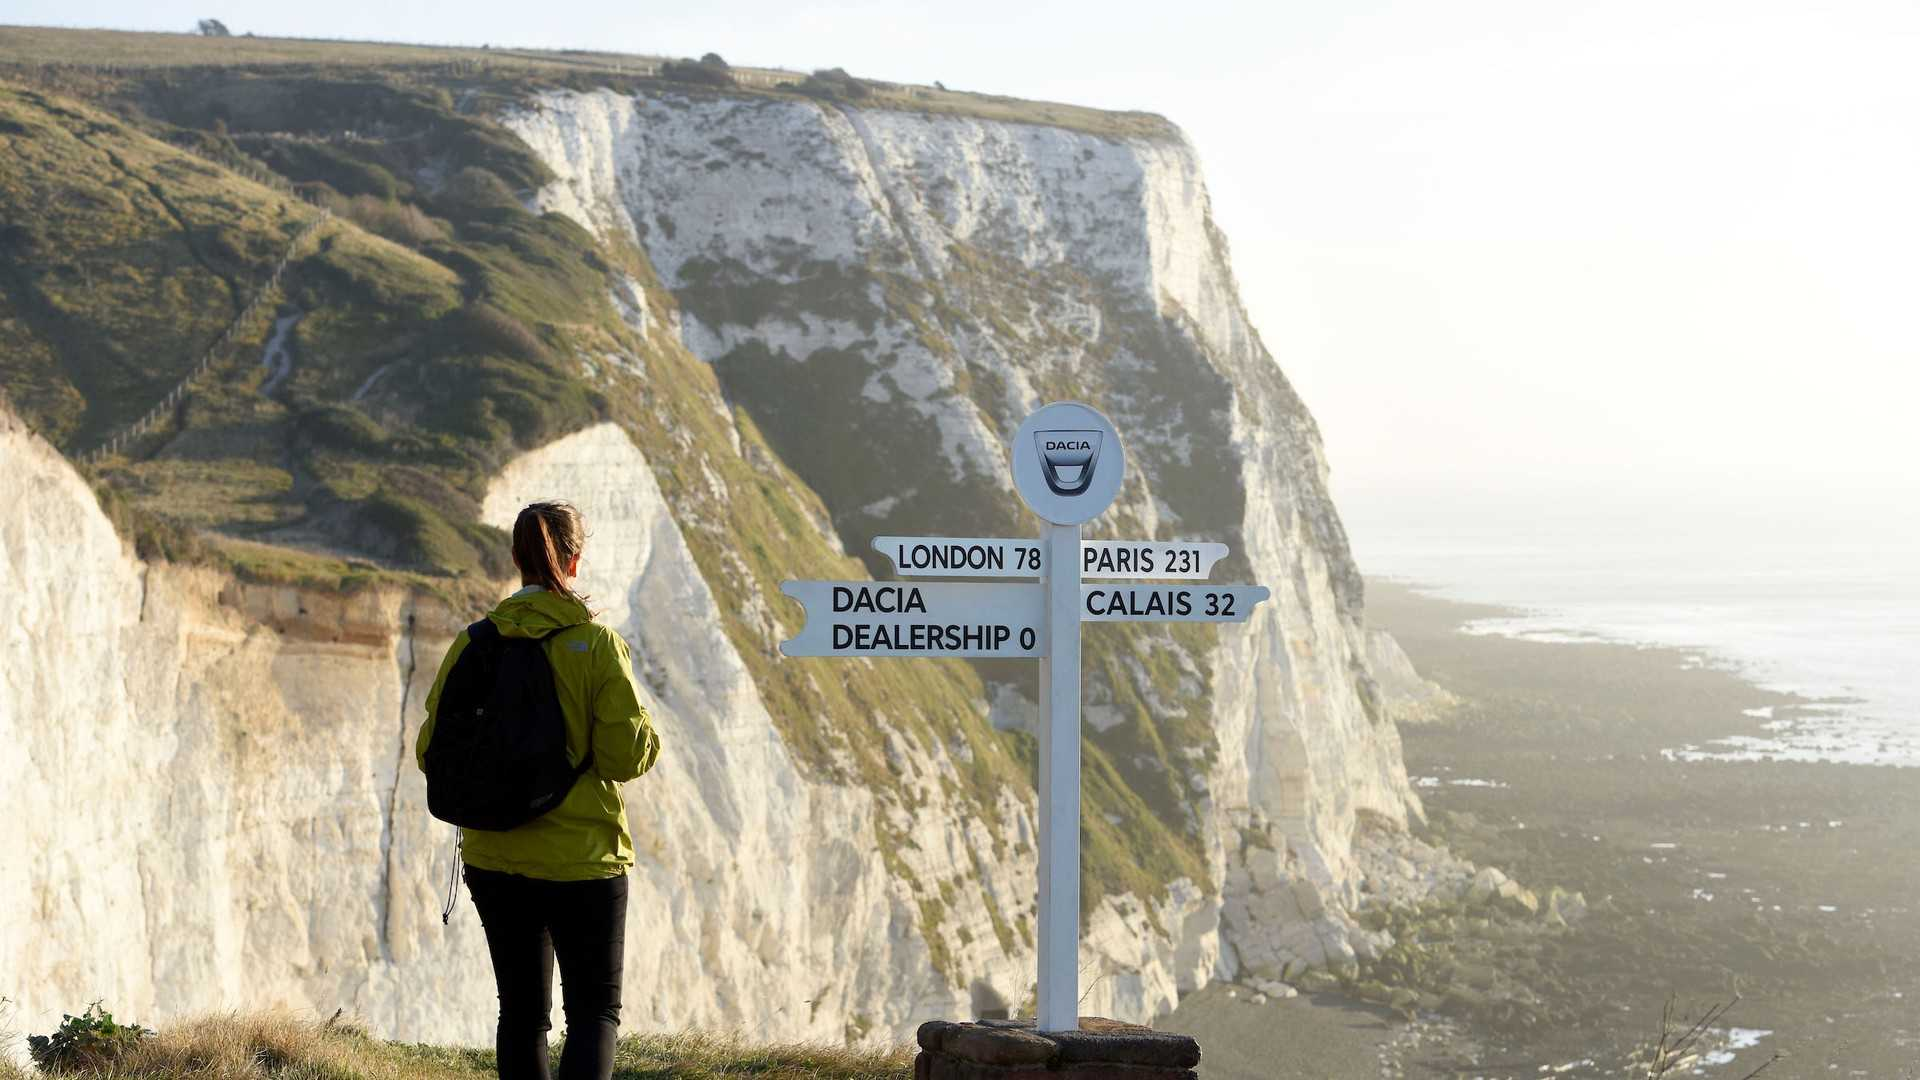 dacia-pop-up-uk-dealerships-at-white-cliffs-of-dover-1